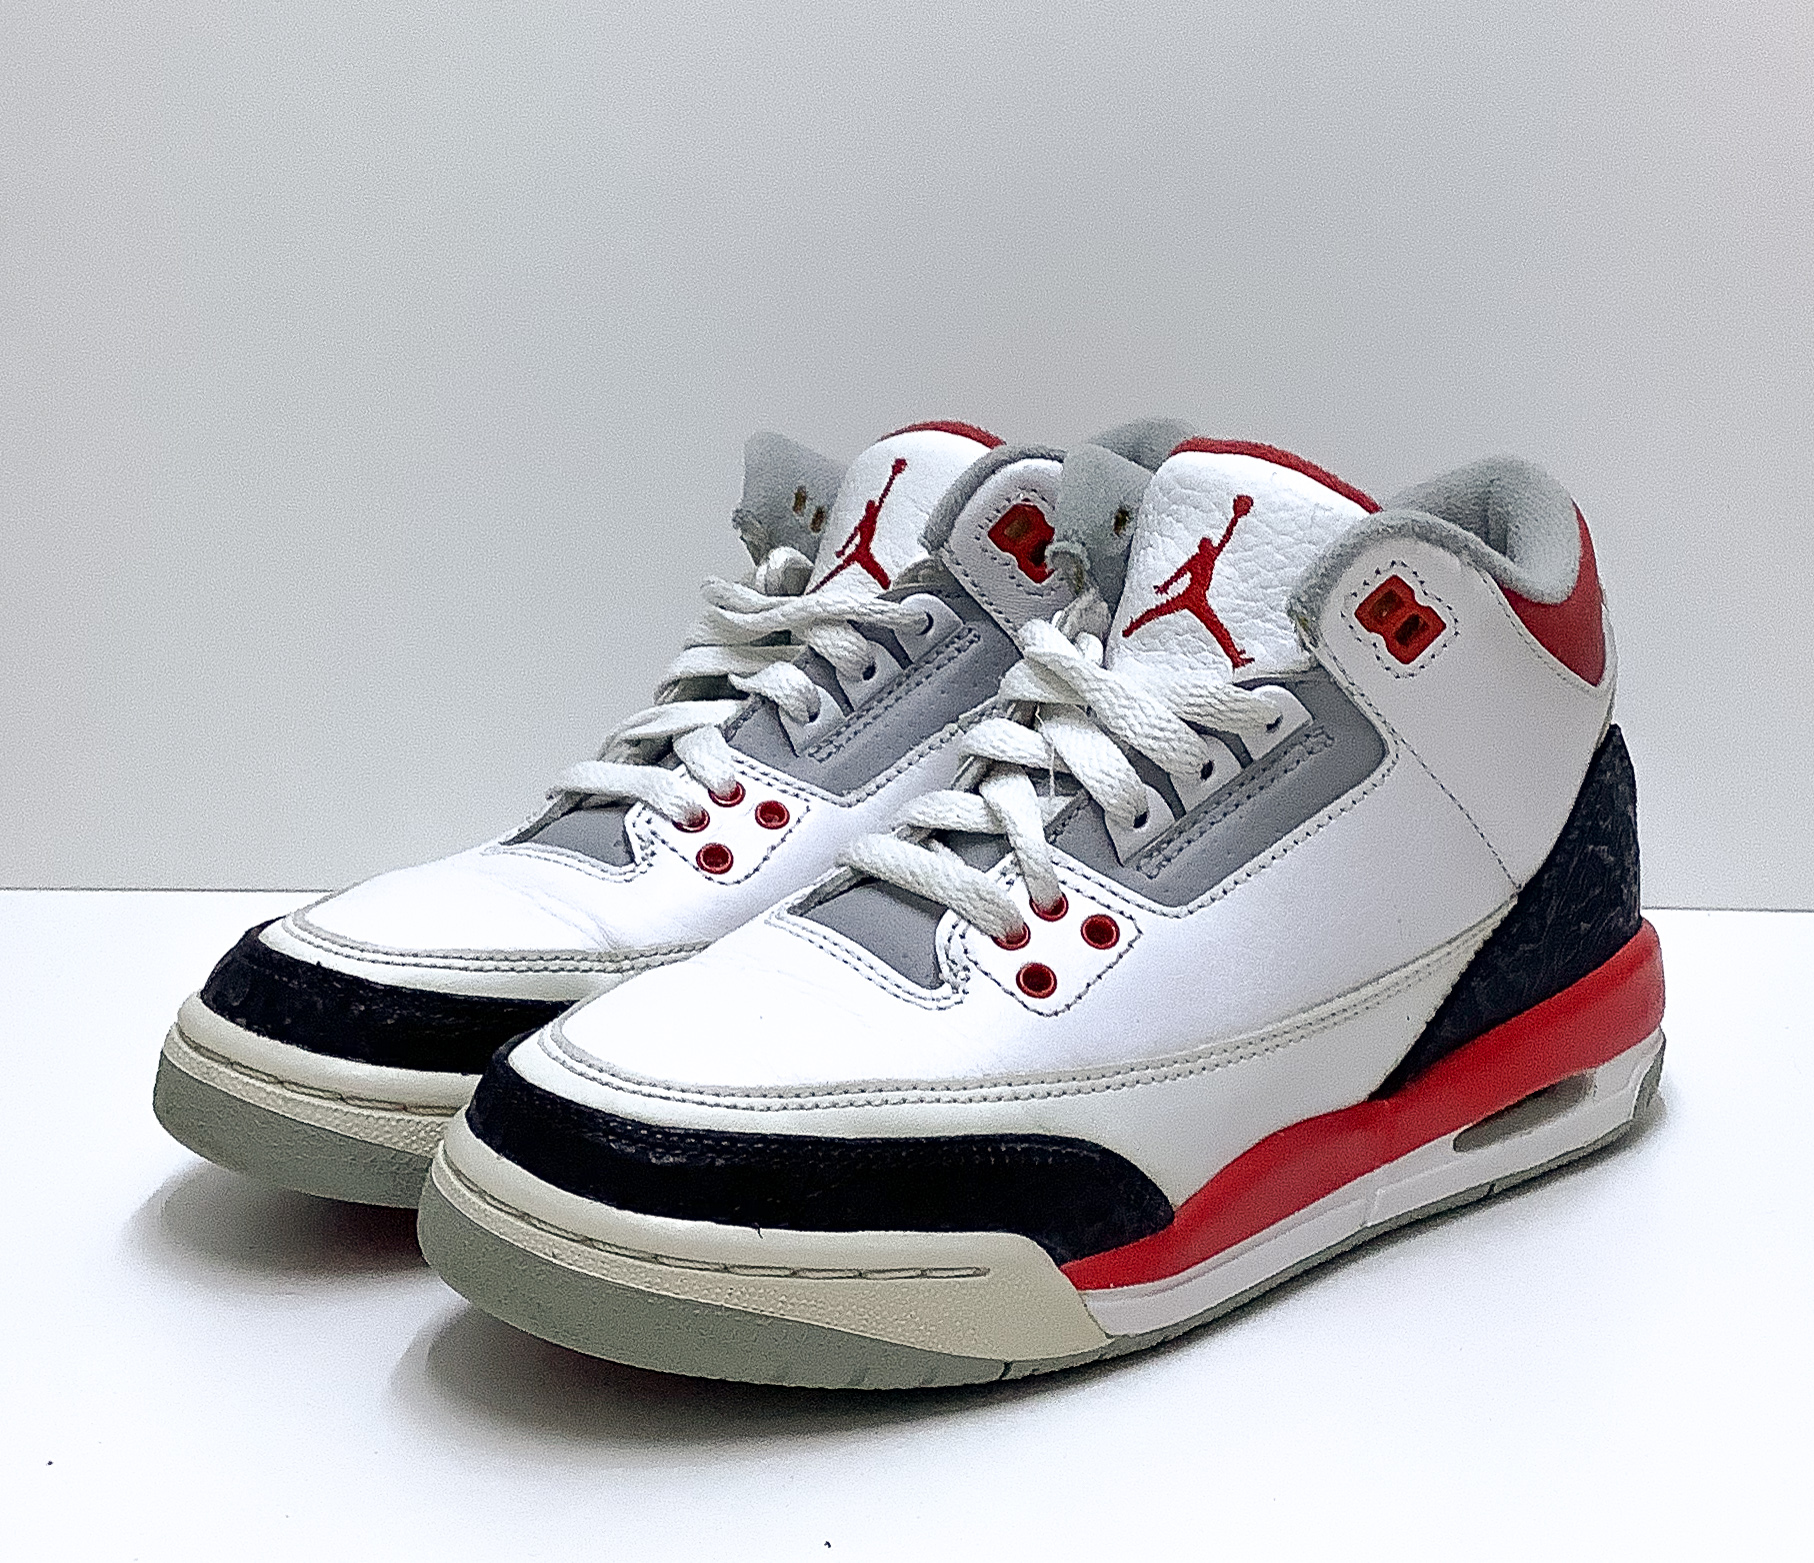 Jordan 3 Fire Red (GS)